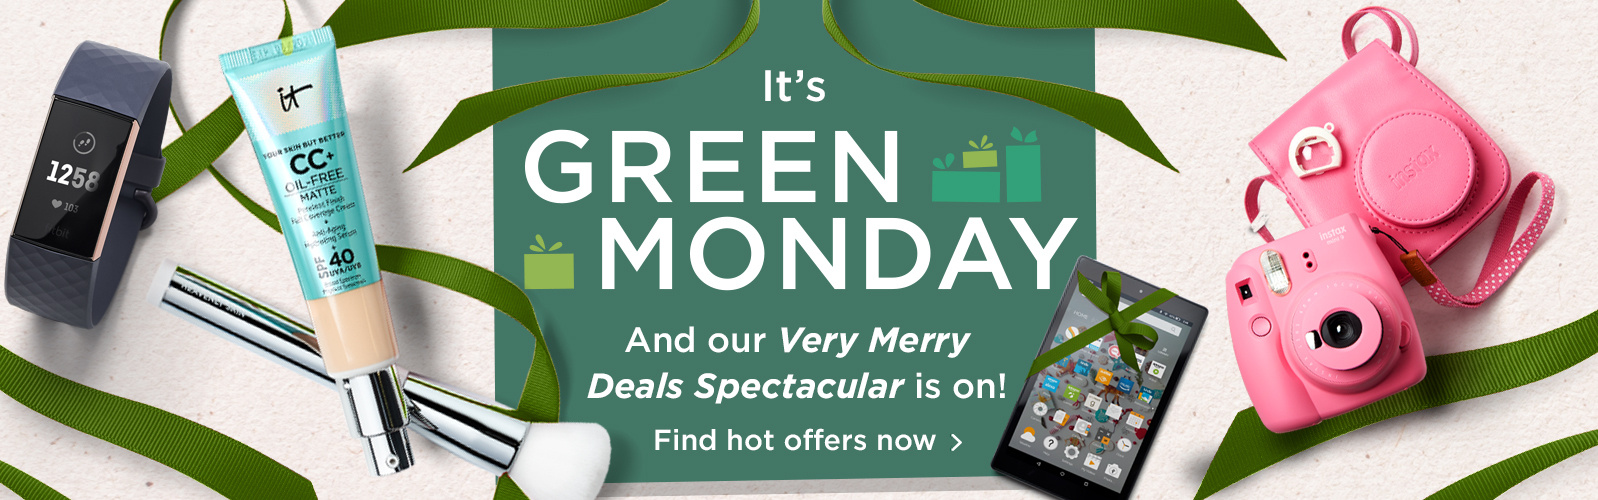 It's Green Monday — And our Very Merry Deals Spectacular is on! Find hot offers now